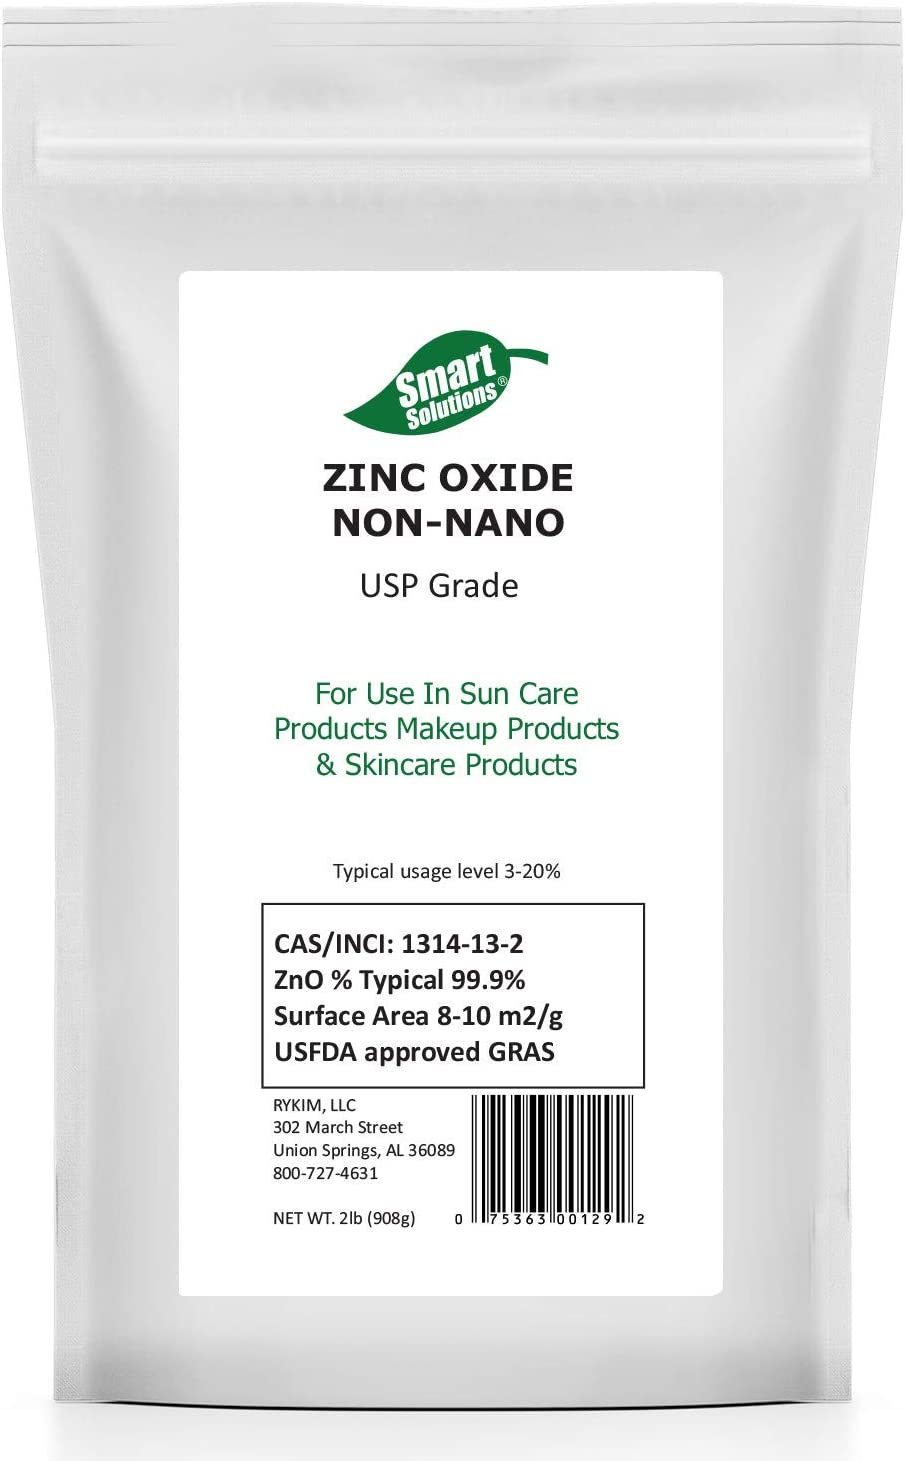 Zinc Oxide Non-Nano 100% Pure Zinc Powder, 2 lb, Food and USP Grade | for DIY Sunscreens, Makeup & Skincare